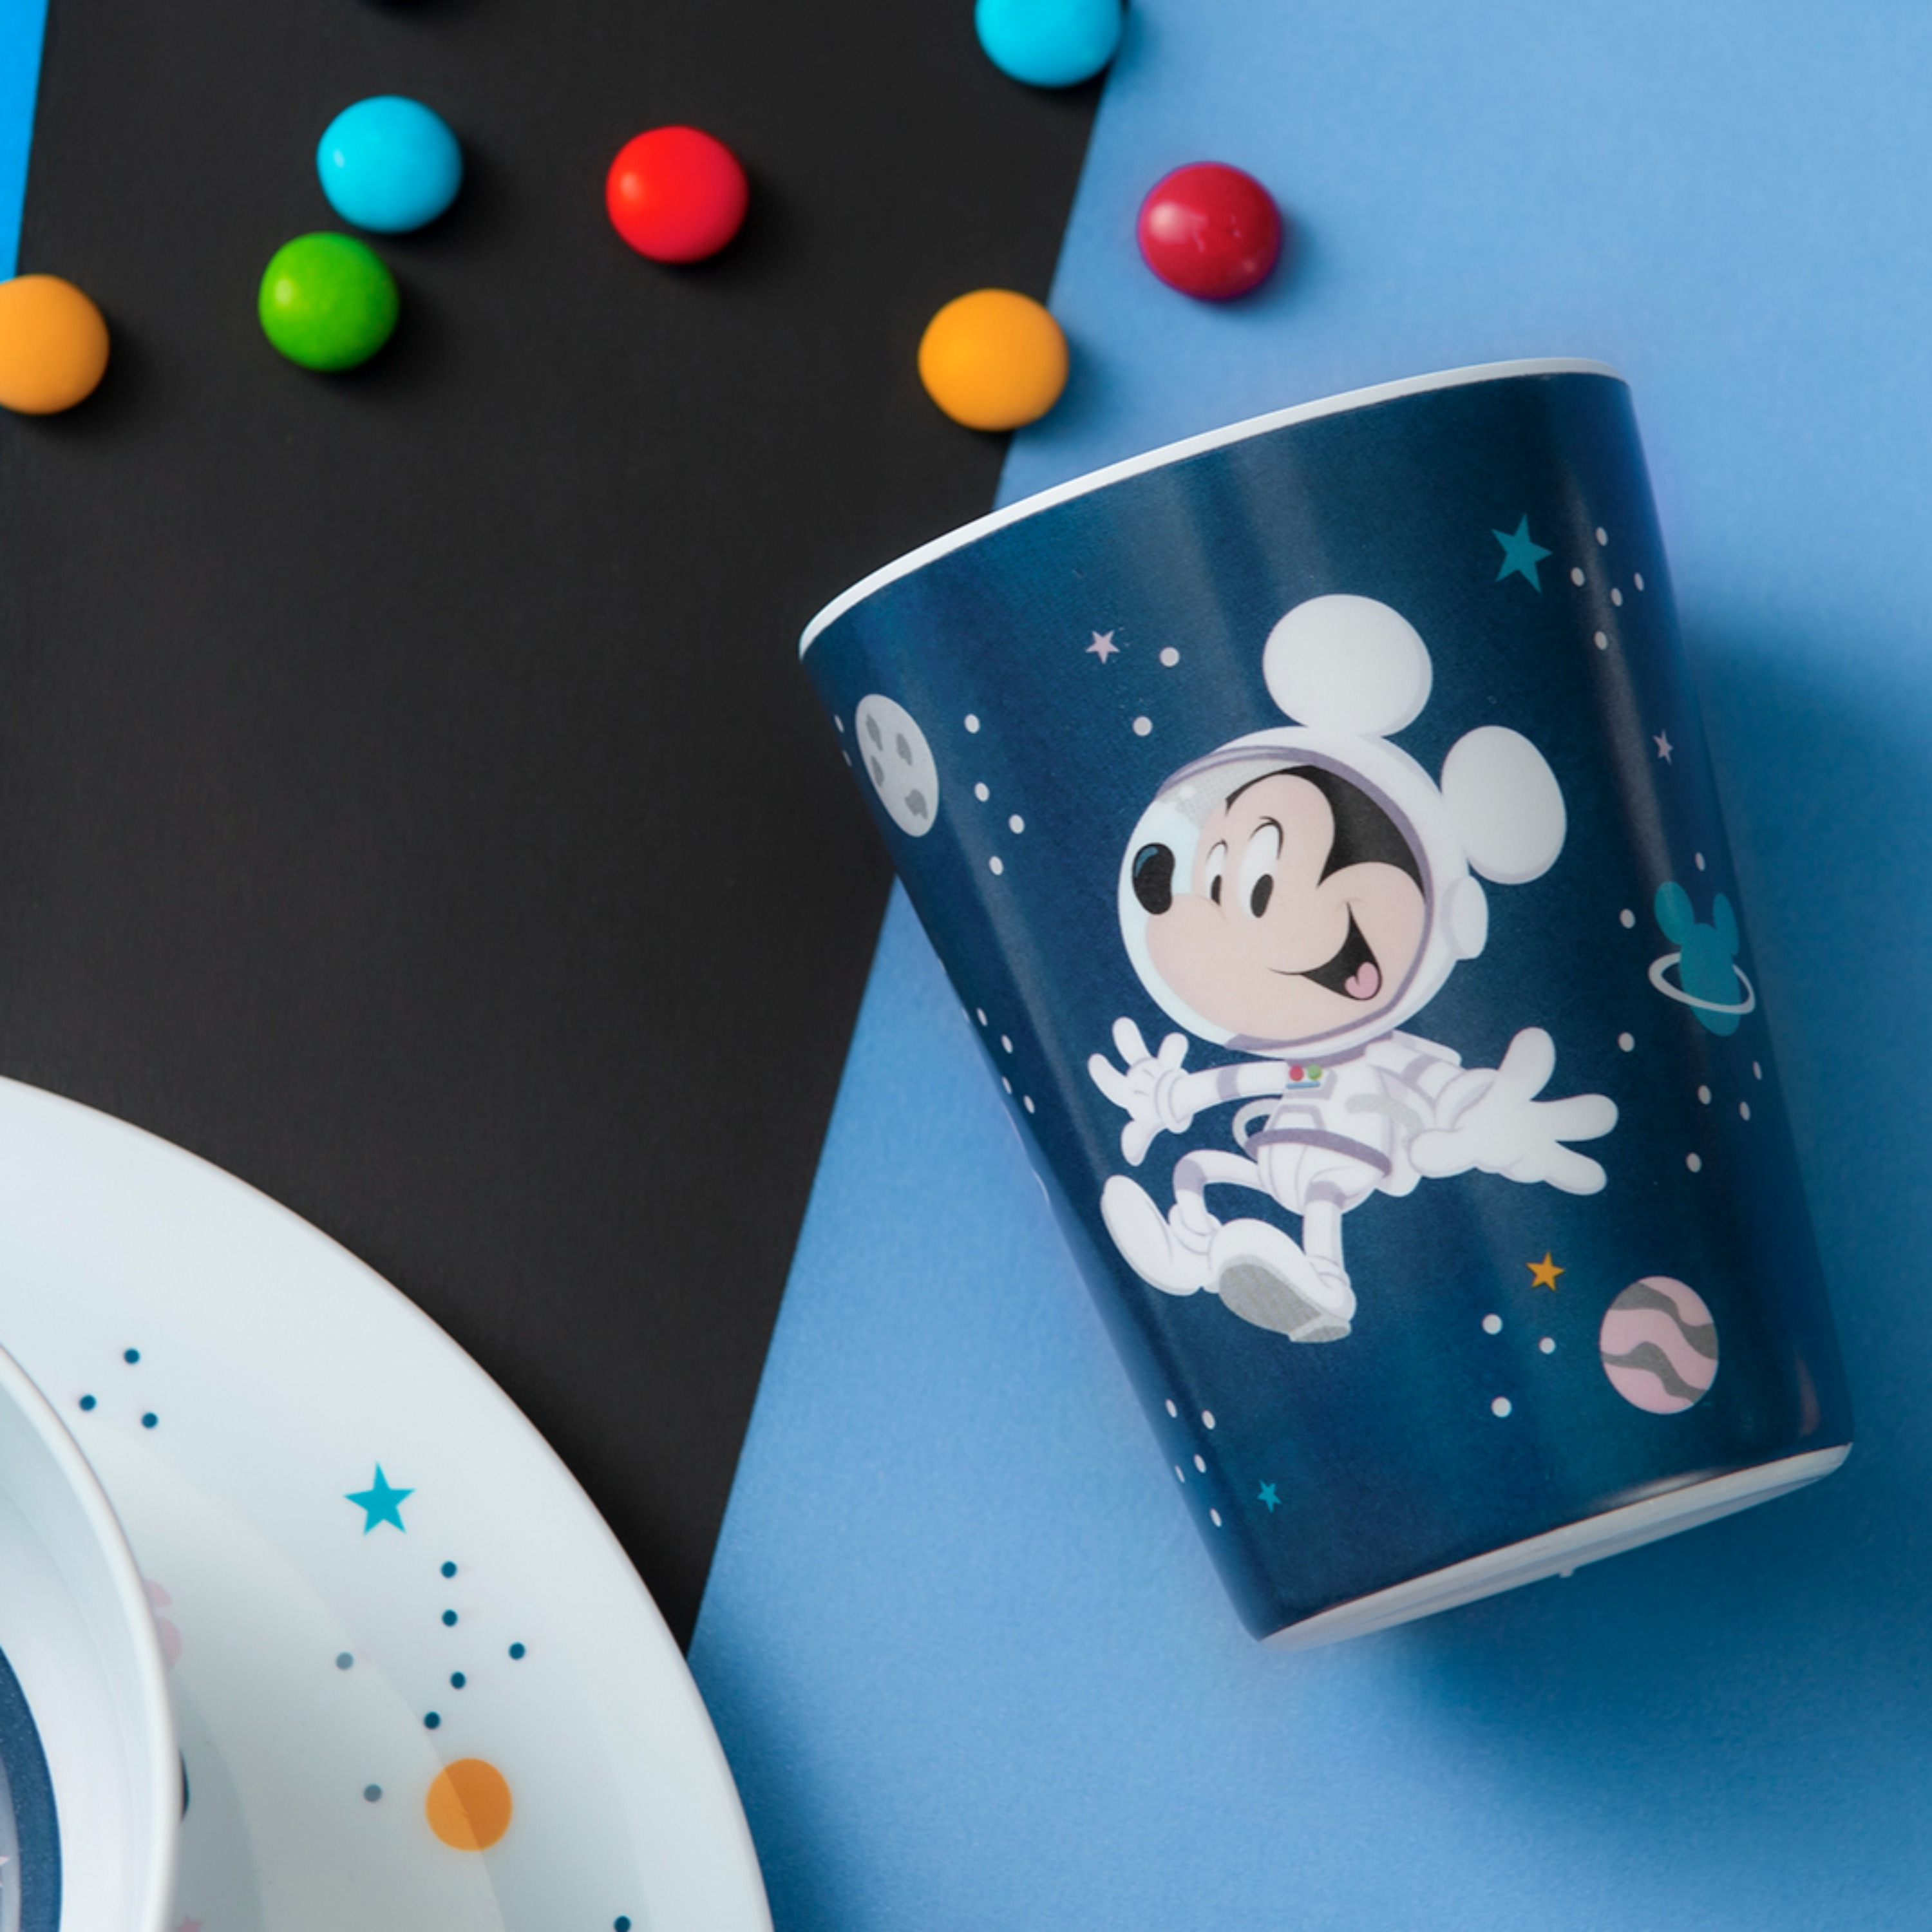 Disney Plate, Bowl, Tumbler and Flatware Set, Outer Space Mickey Mouse, 5-piece set slideshow image 4